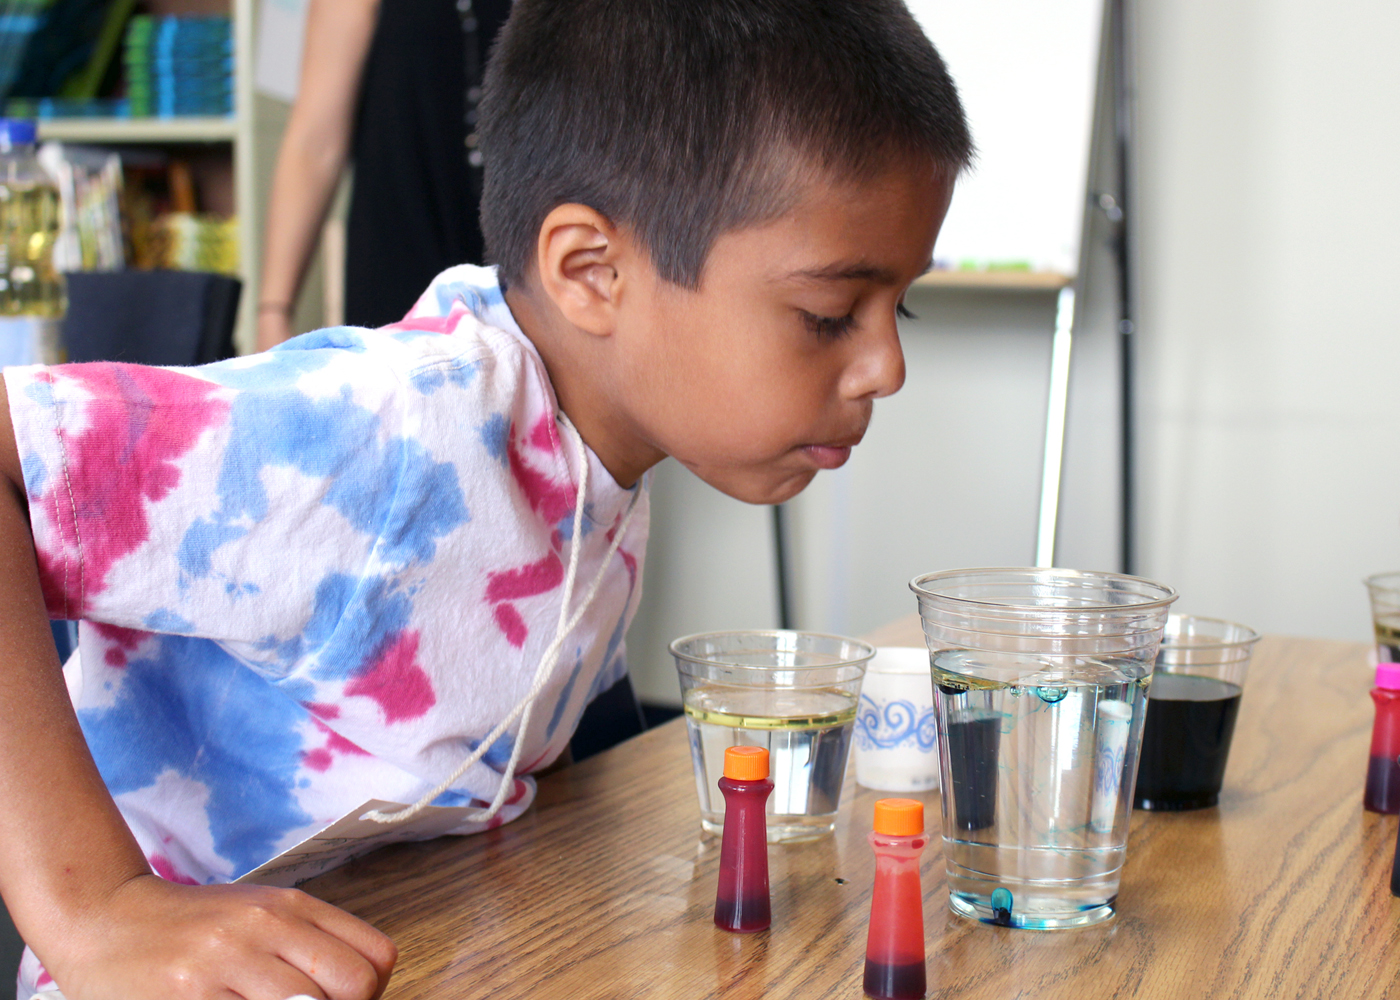 Quest Elementary School student Owen John, in Breanna Stanford's primary class, creates underwater fireworks during Science Fun Day. Provided photo